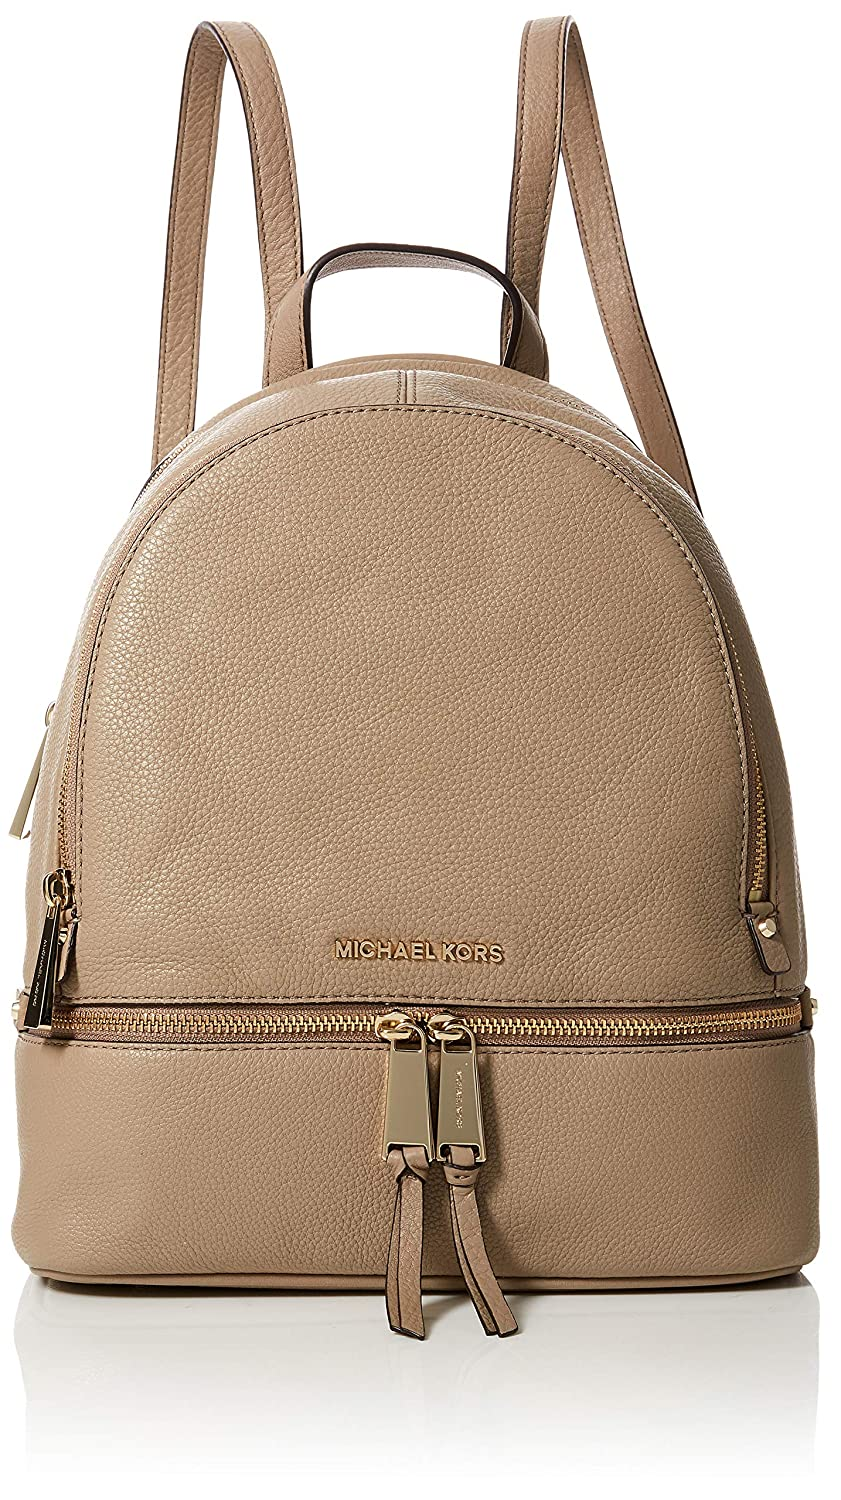 986711da3b97 Amazon.com  Michael Kors Womens Rhea Zip Backpack Handbag Beige (TRUFFLE)   Shoes